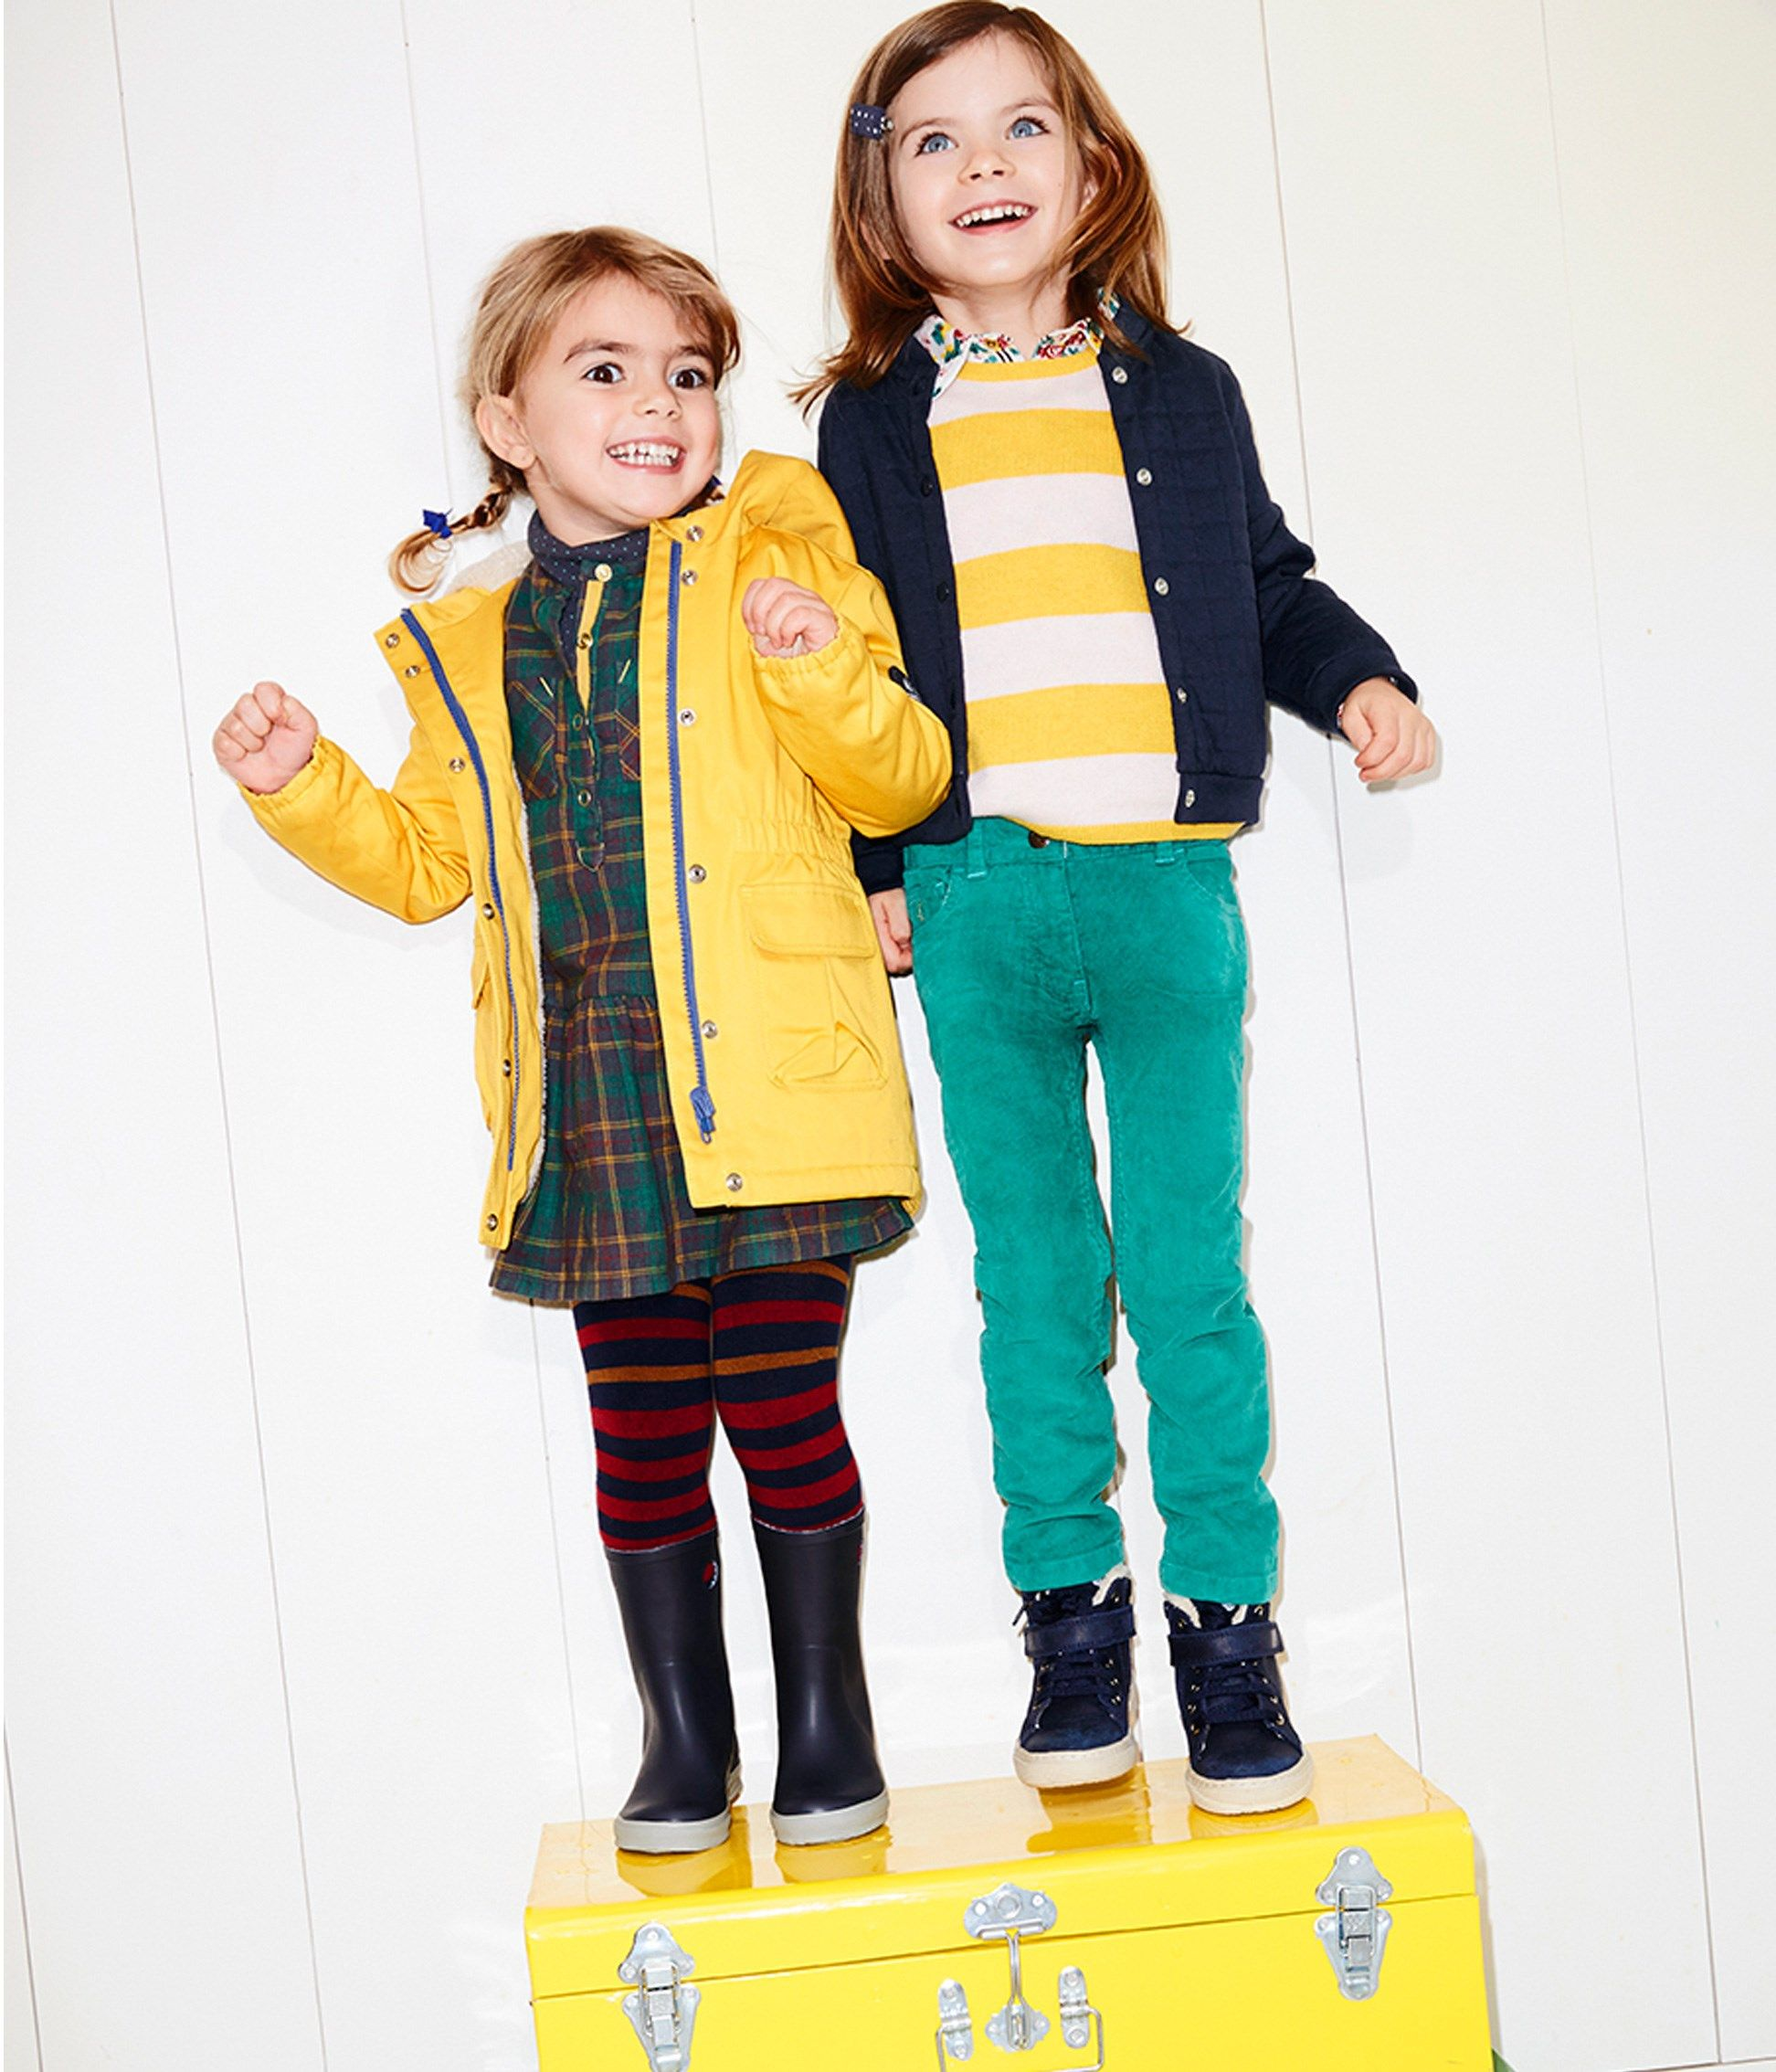 Don t miss those super cute and amazing fashionable kids Check them